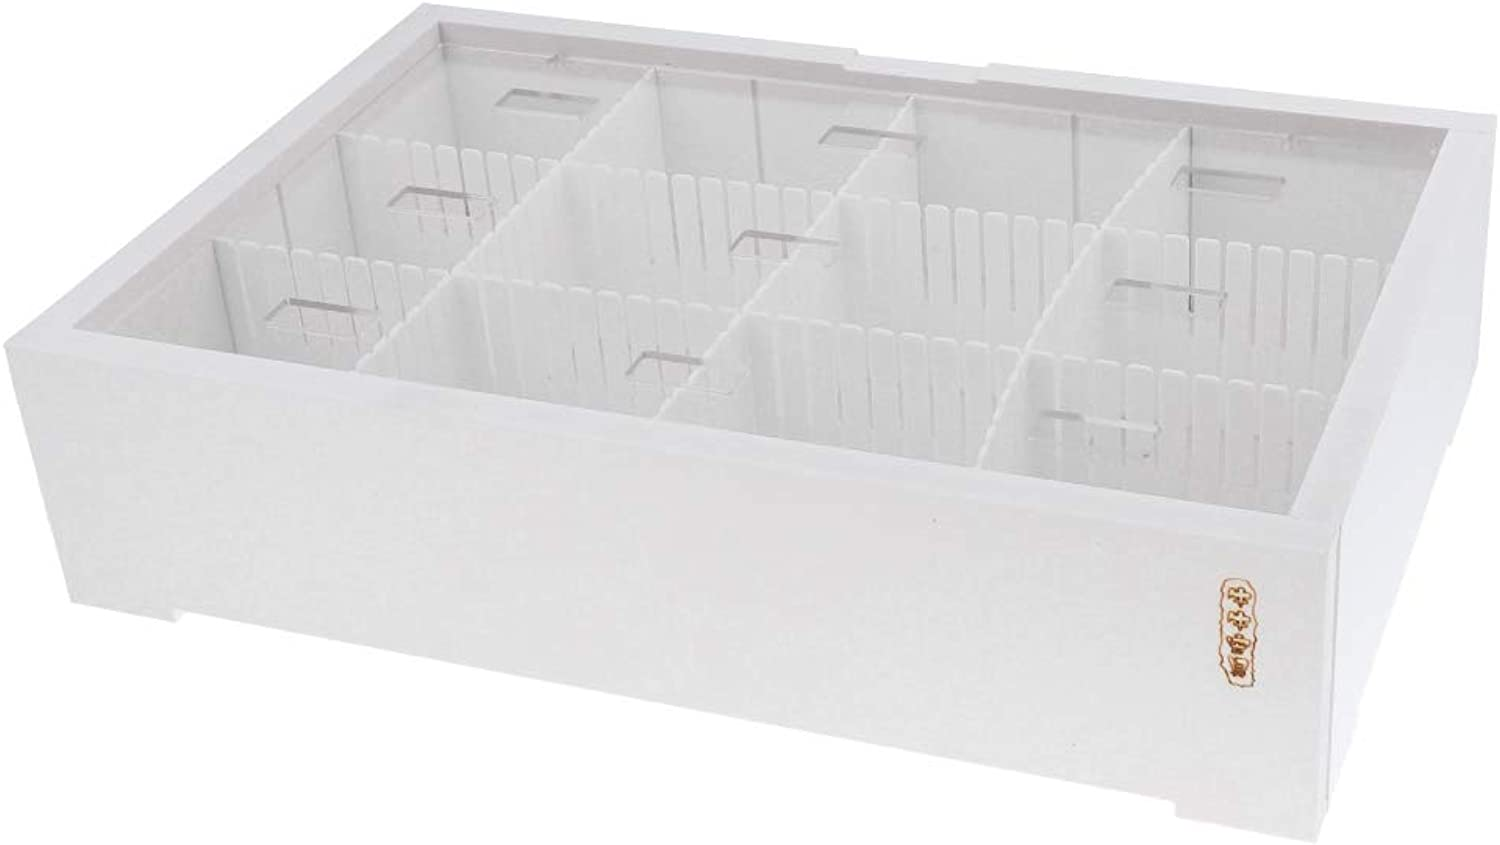 D DOLITY Small Desktop Fish Bowl Aquarium Fish Tank Turtle Isolation Tank White with Five Pieces Boards